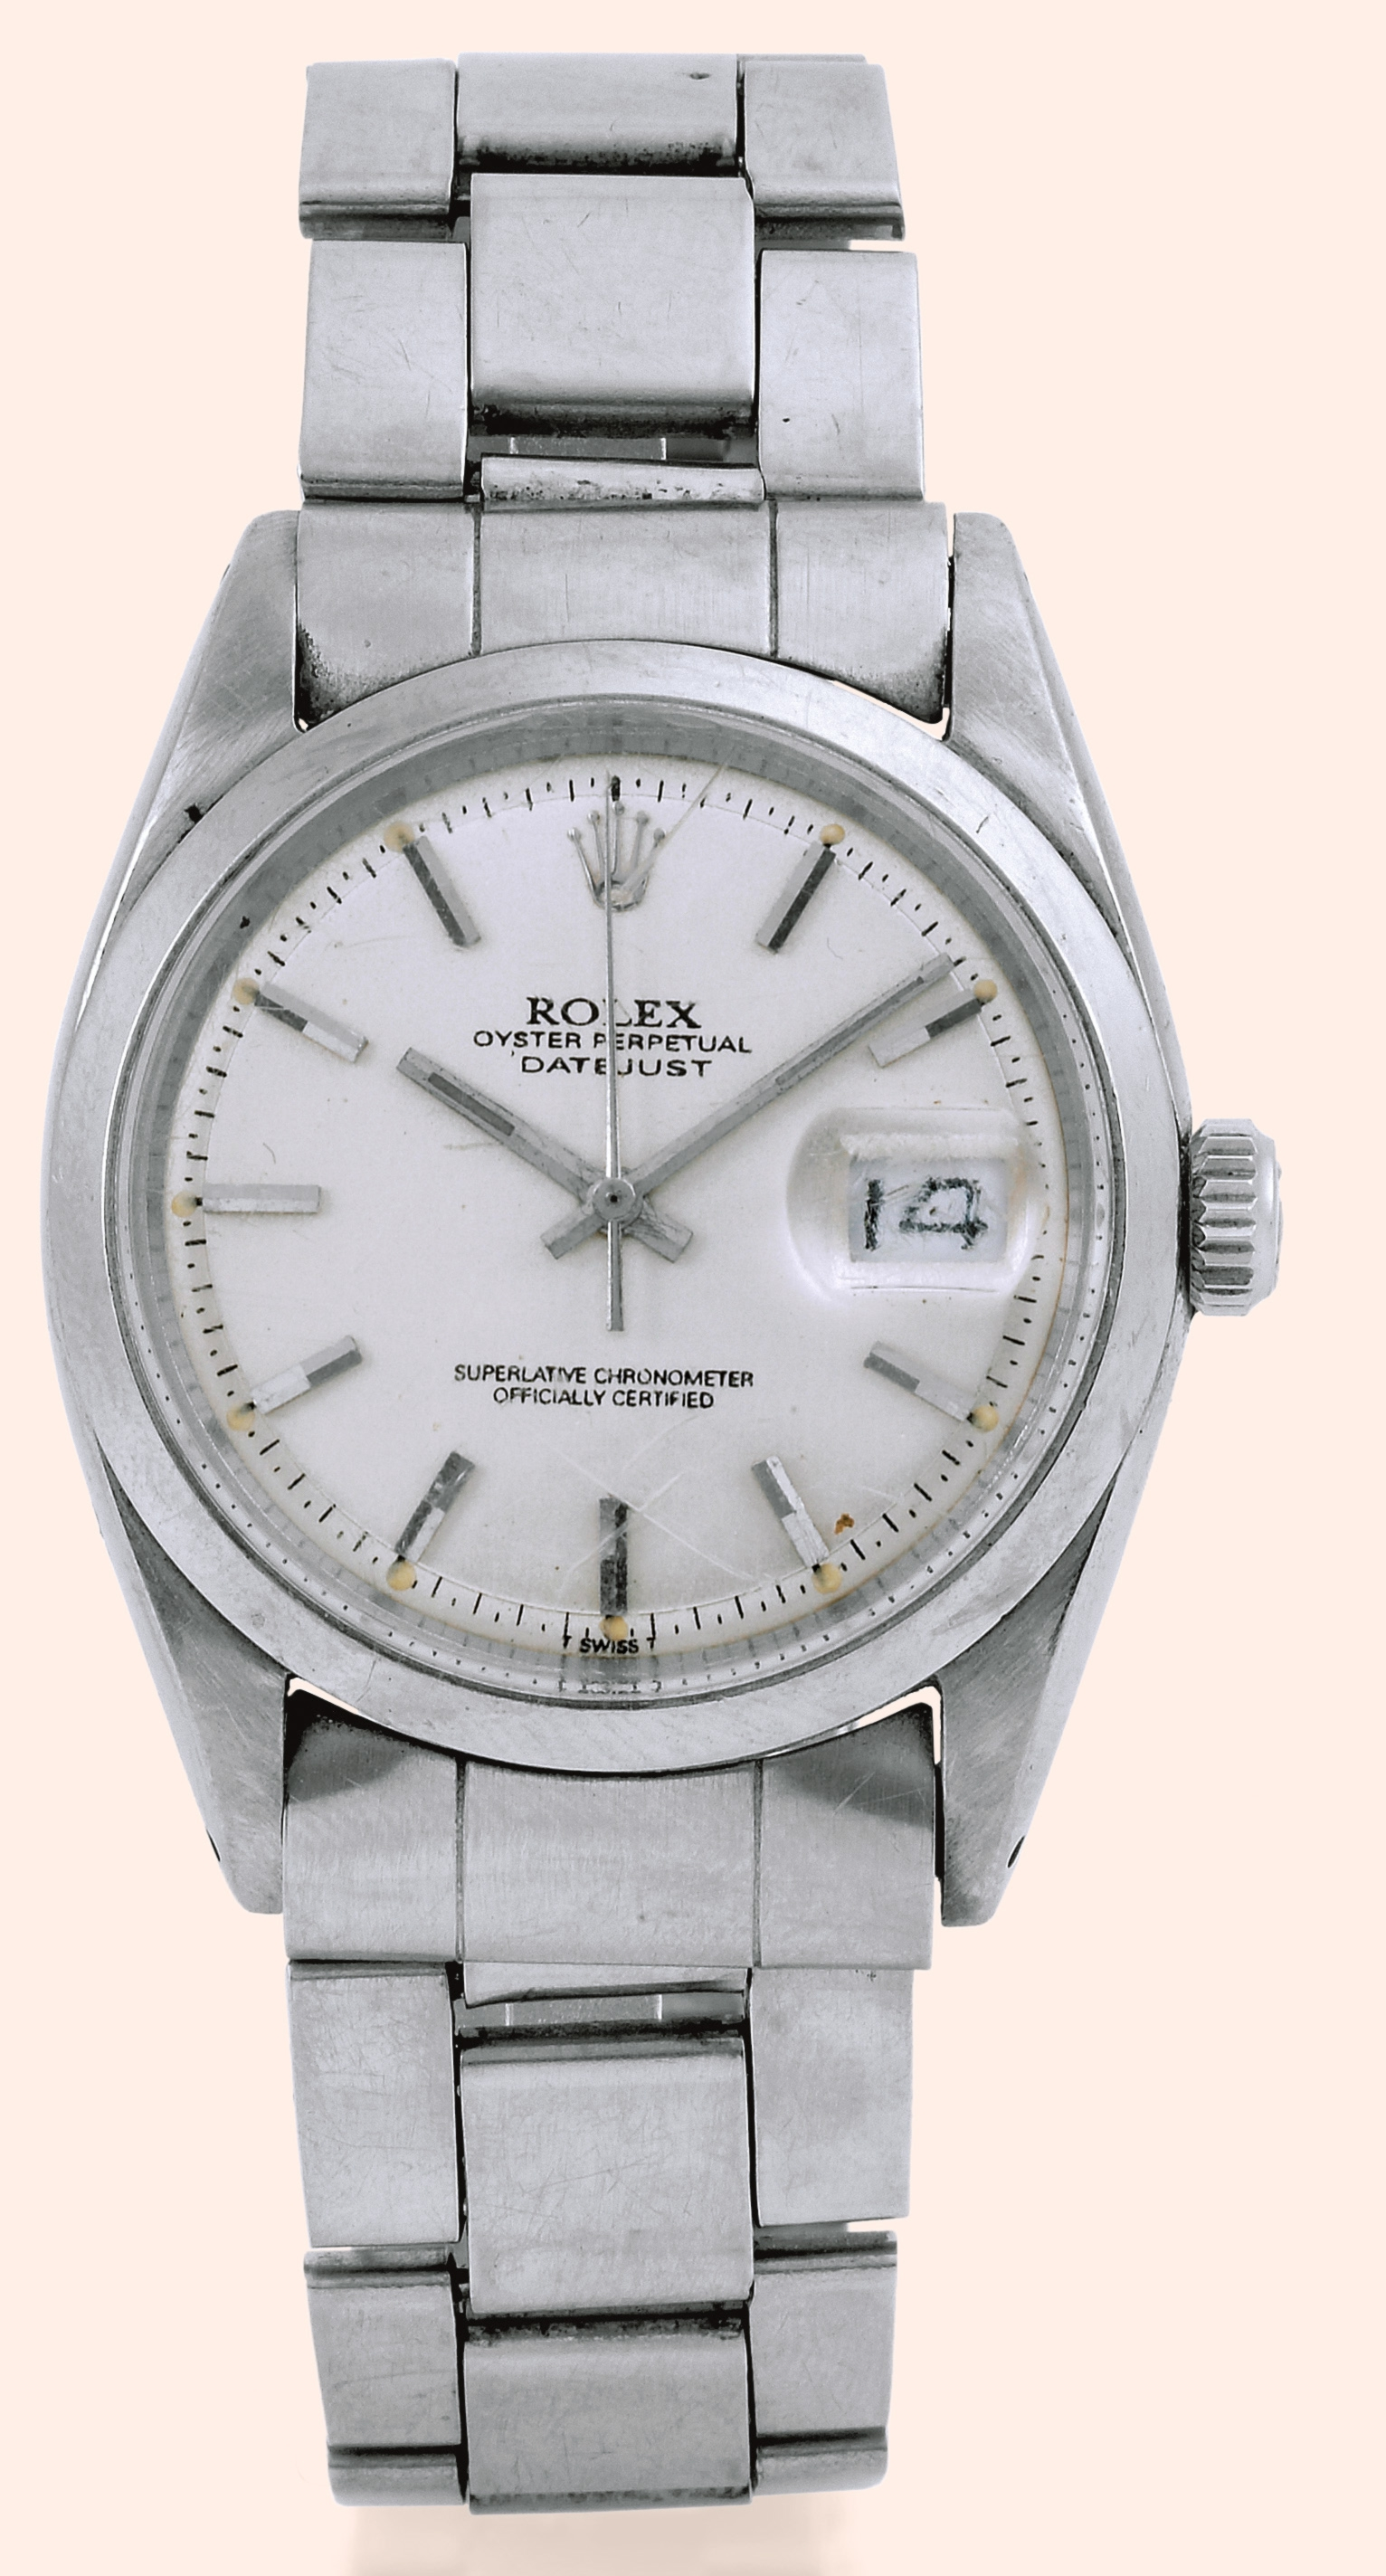 "Rolex, ""Oyster Perpetual Datejust, Superlative Chronometer Officially"